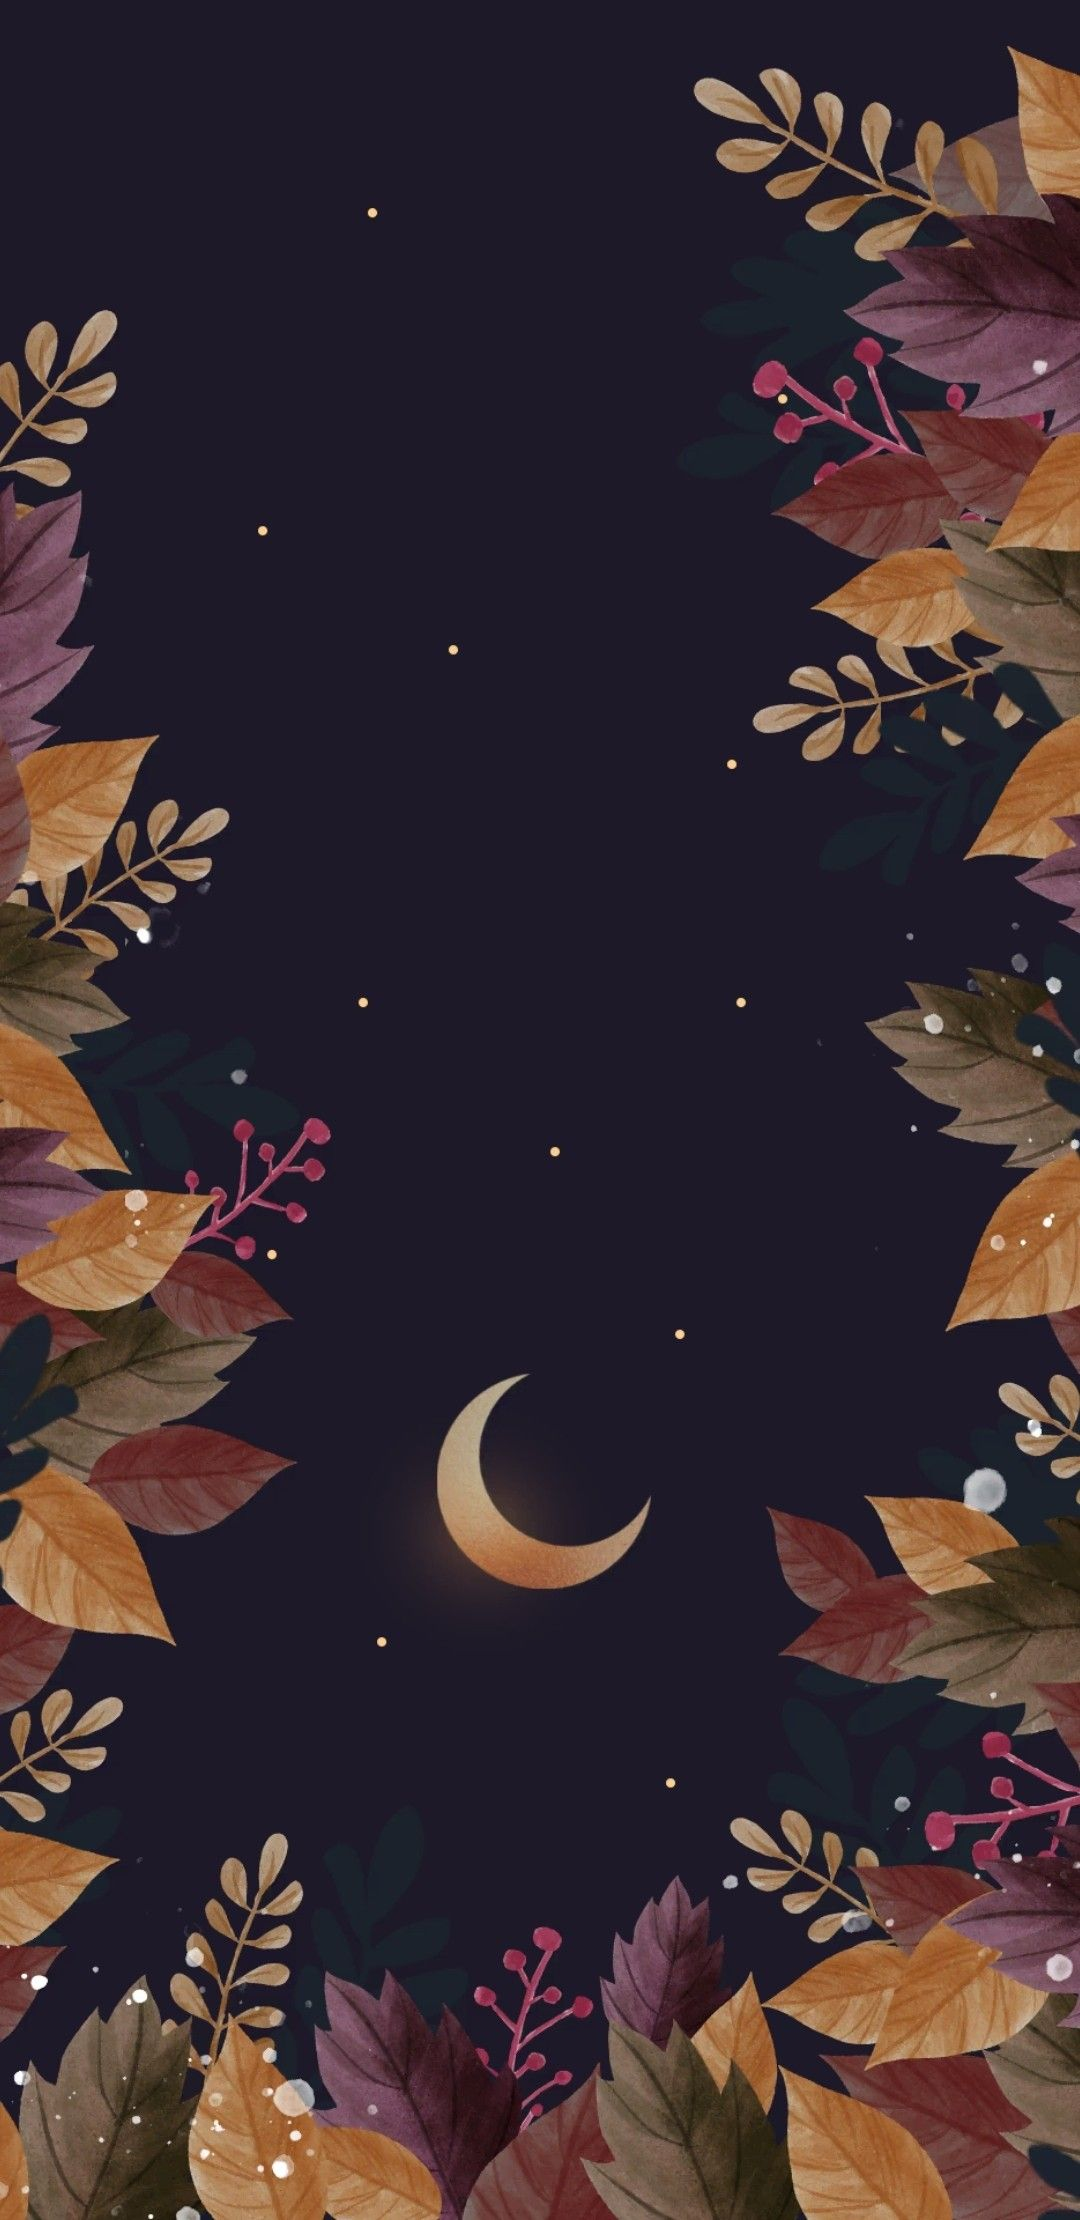 Background Designs Halloween Wallpaper, Witch Wallpaper, Fall Wallpaper, Holiday Wallpaper, Iphone Wallpaper